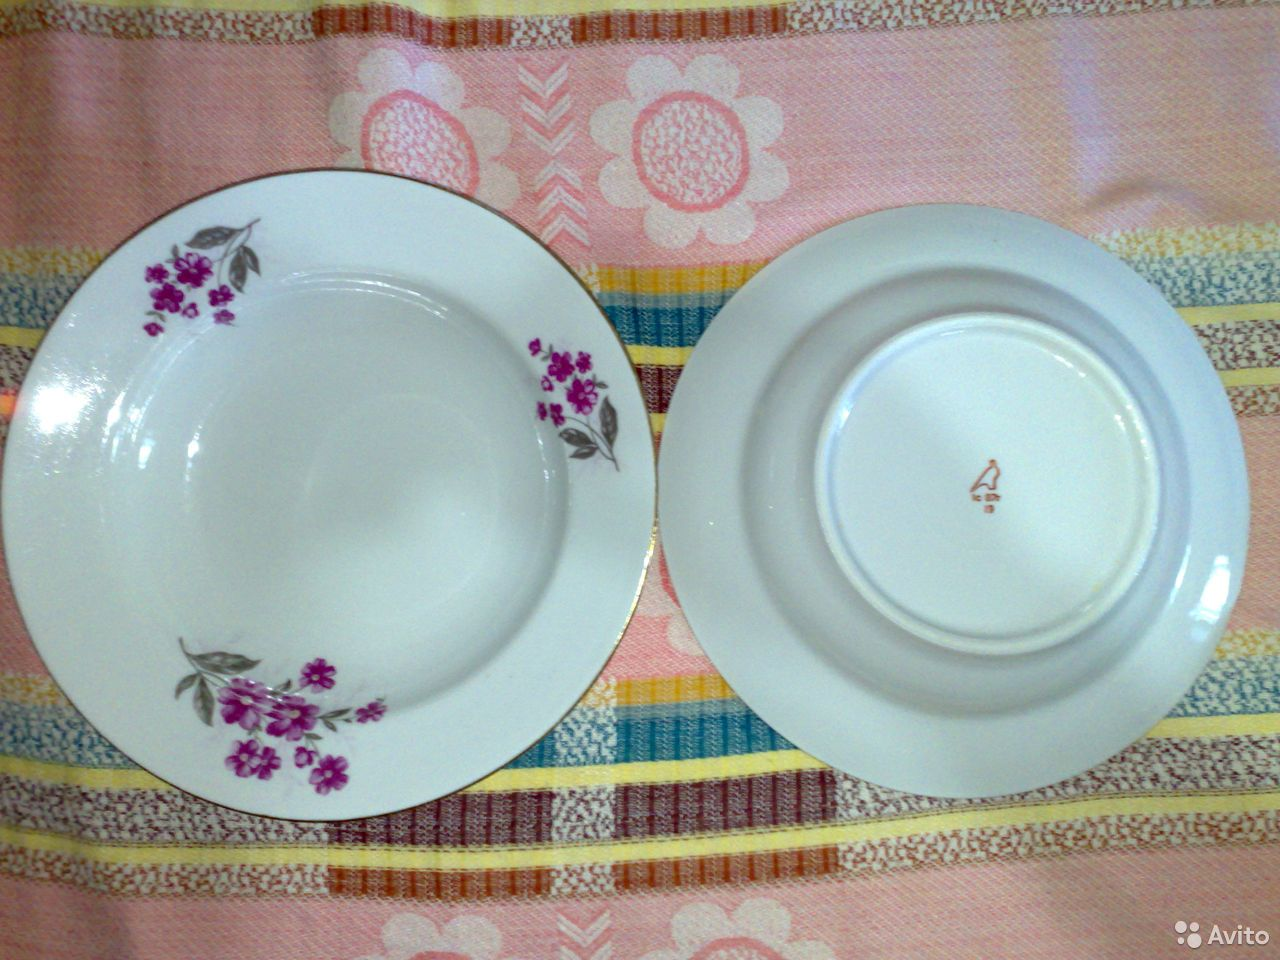 The plates of the USSR